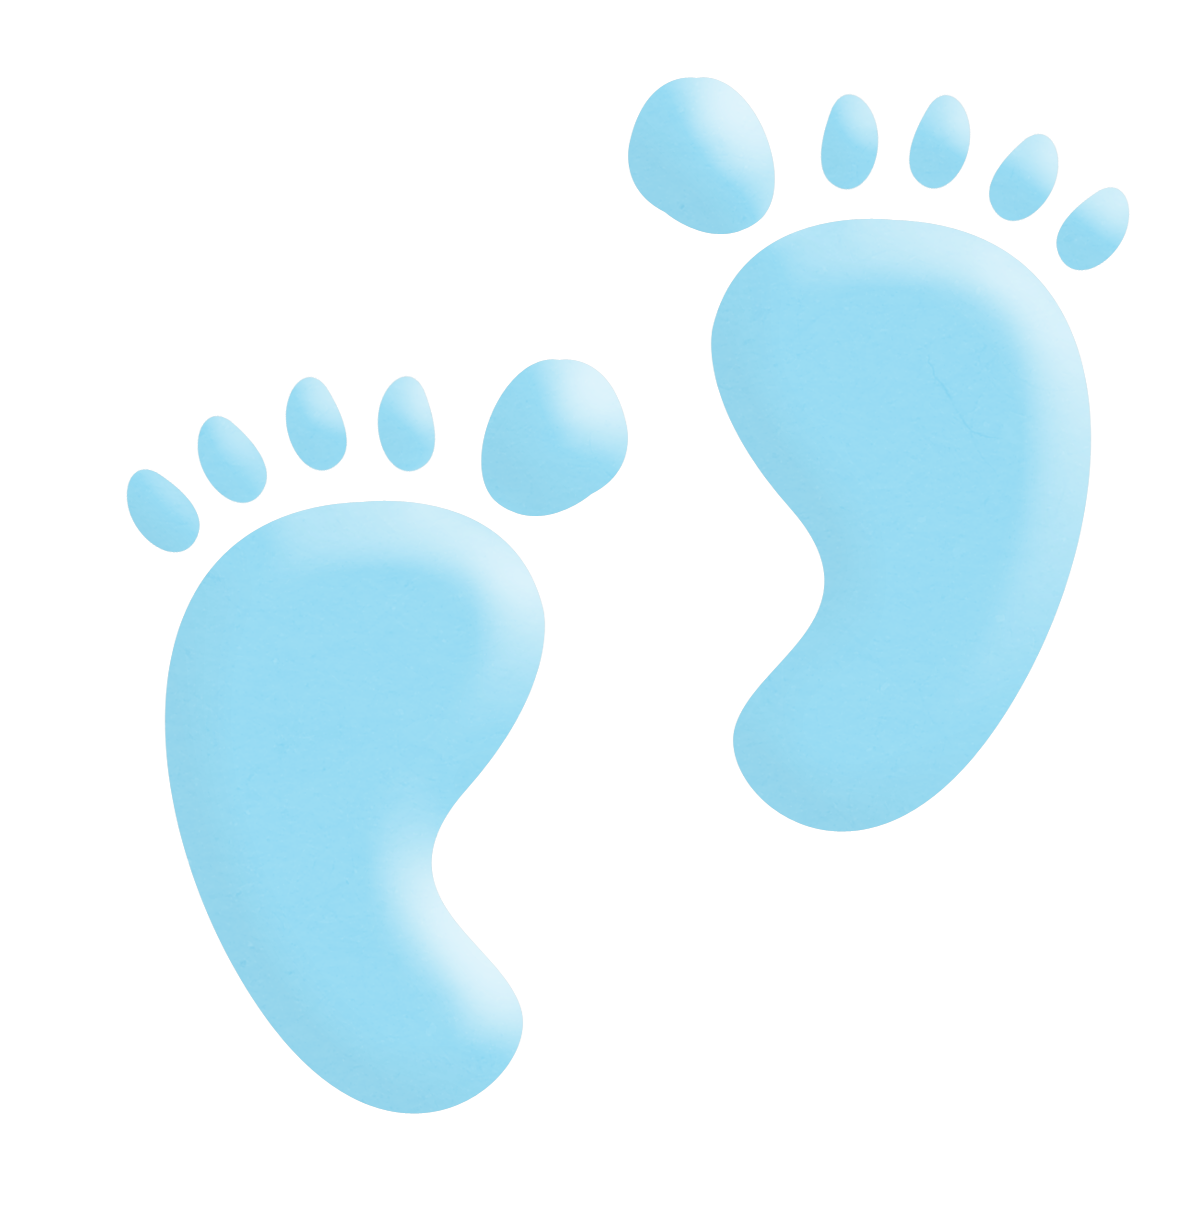 Footprints clipart baby shower. Pin by kyllike on